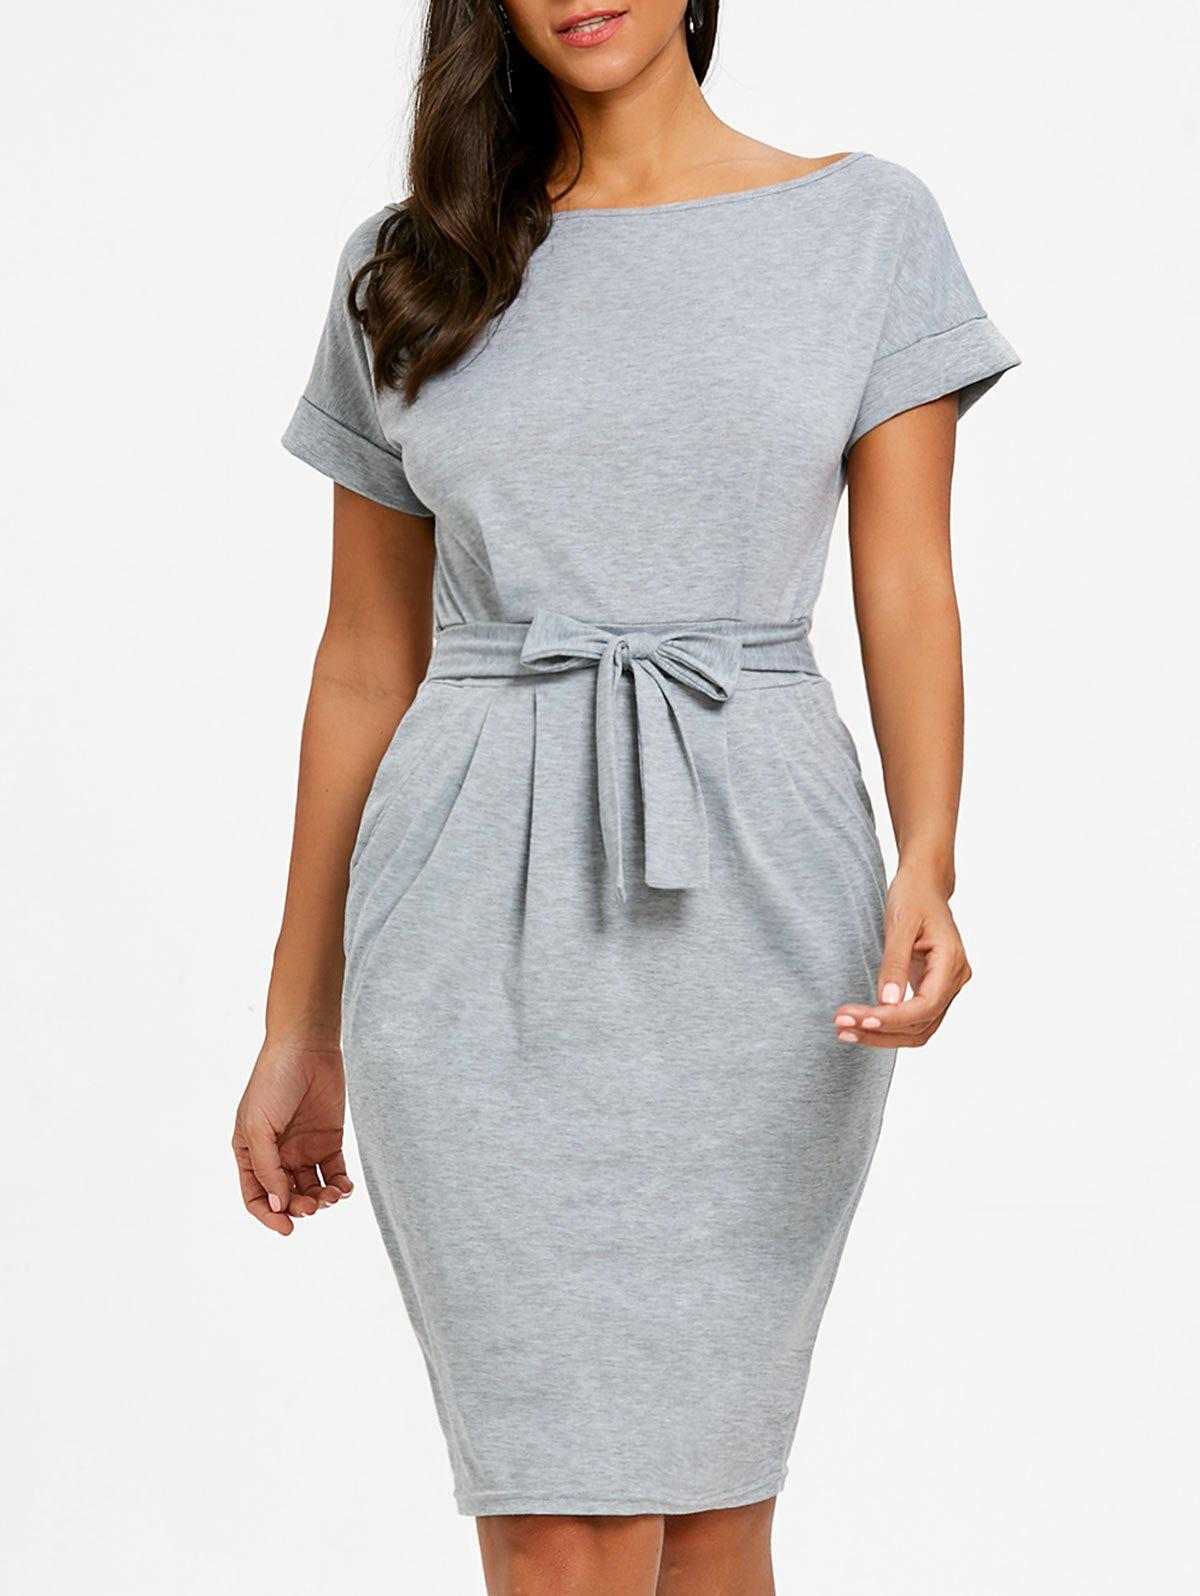 Best Casual Boat Neck Dress